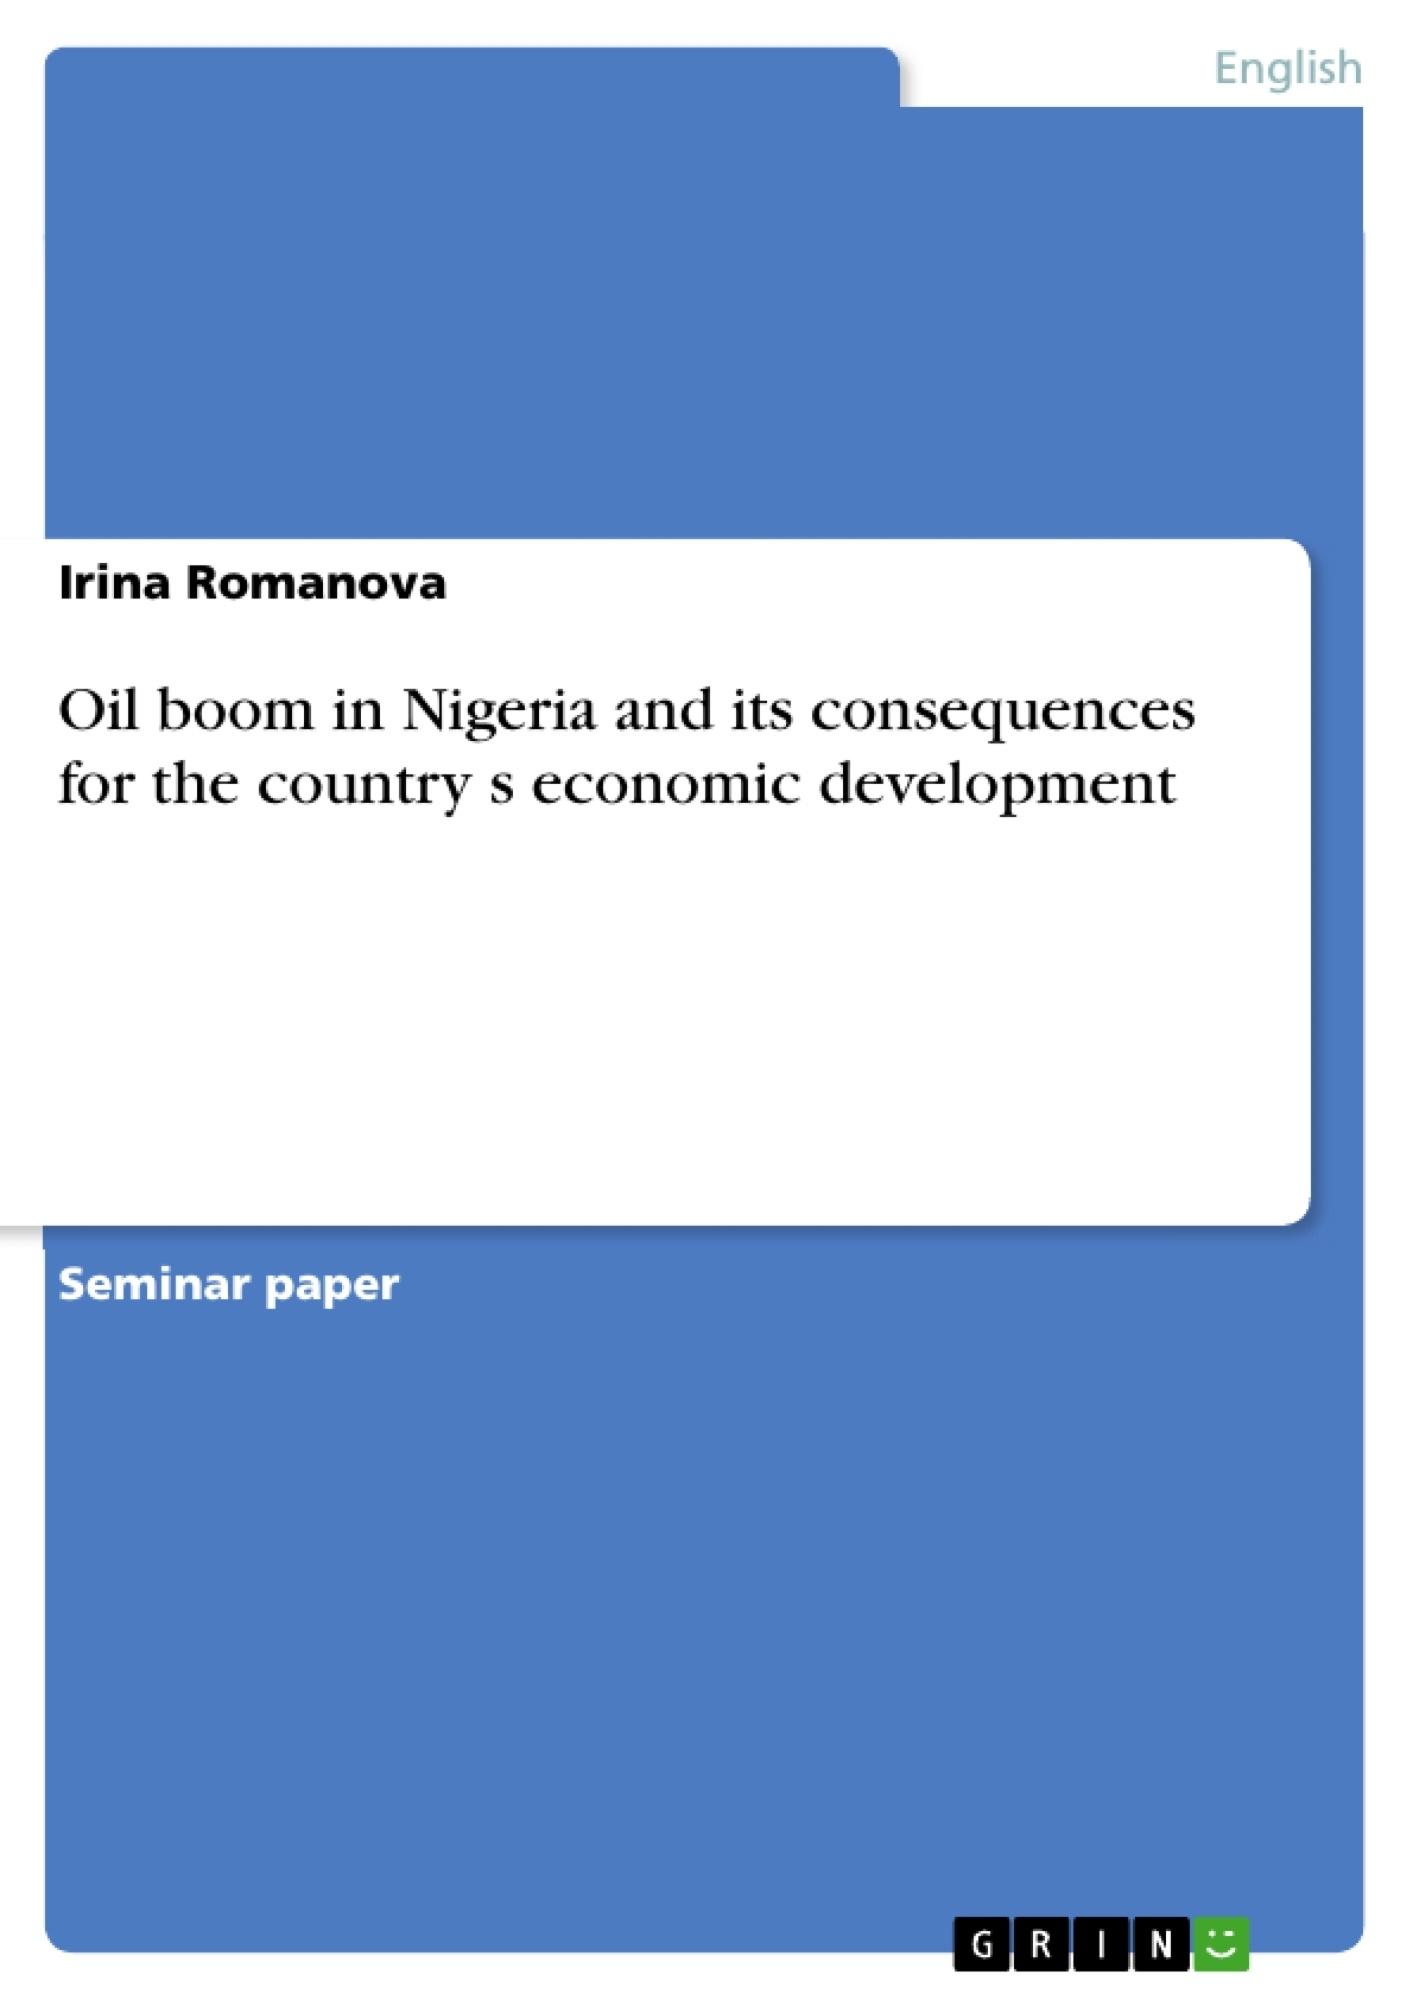 Title: Oil boom in Nigeria and its consequences for the country s economic development